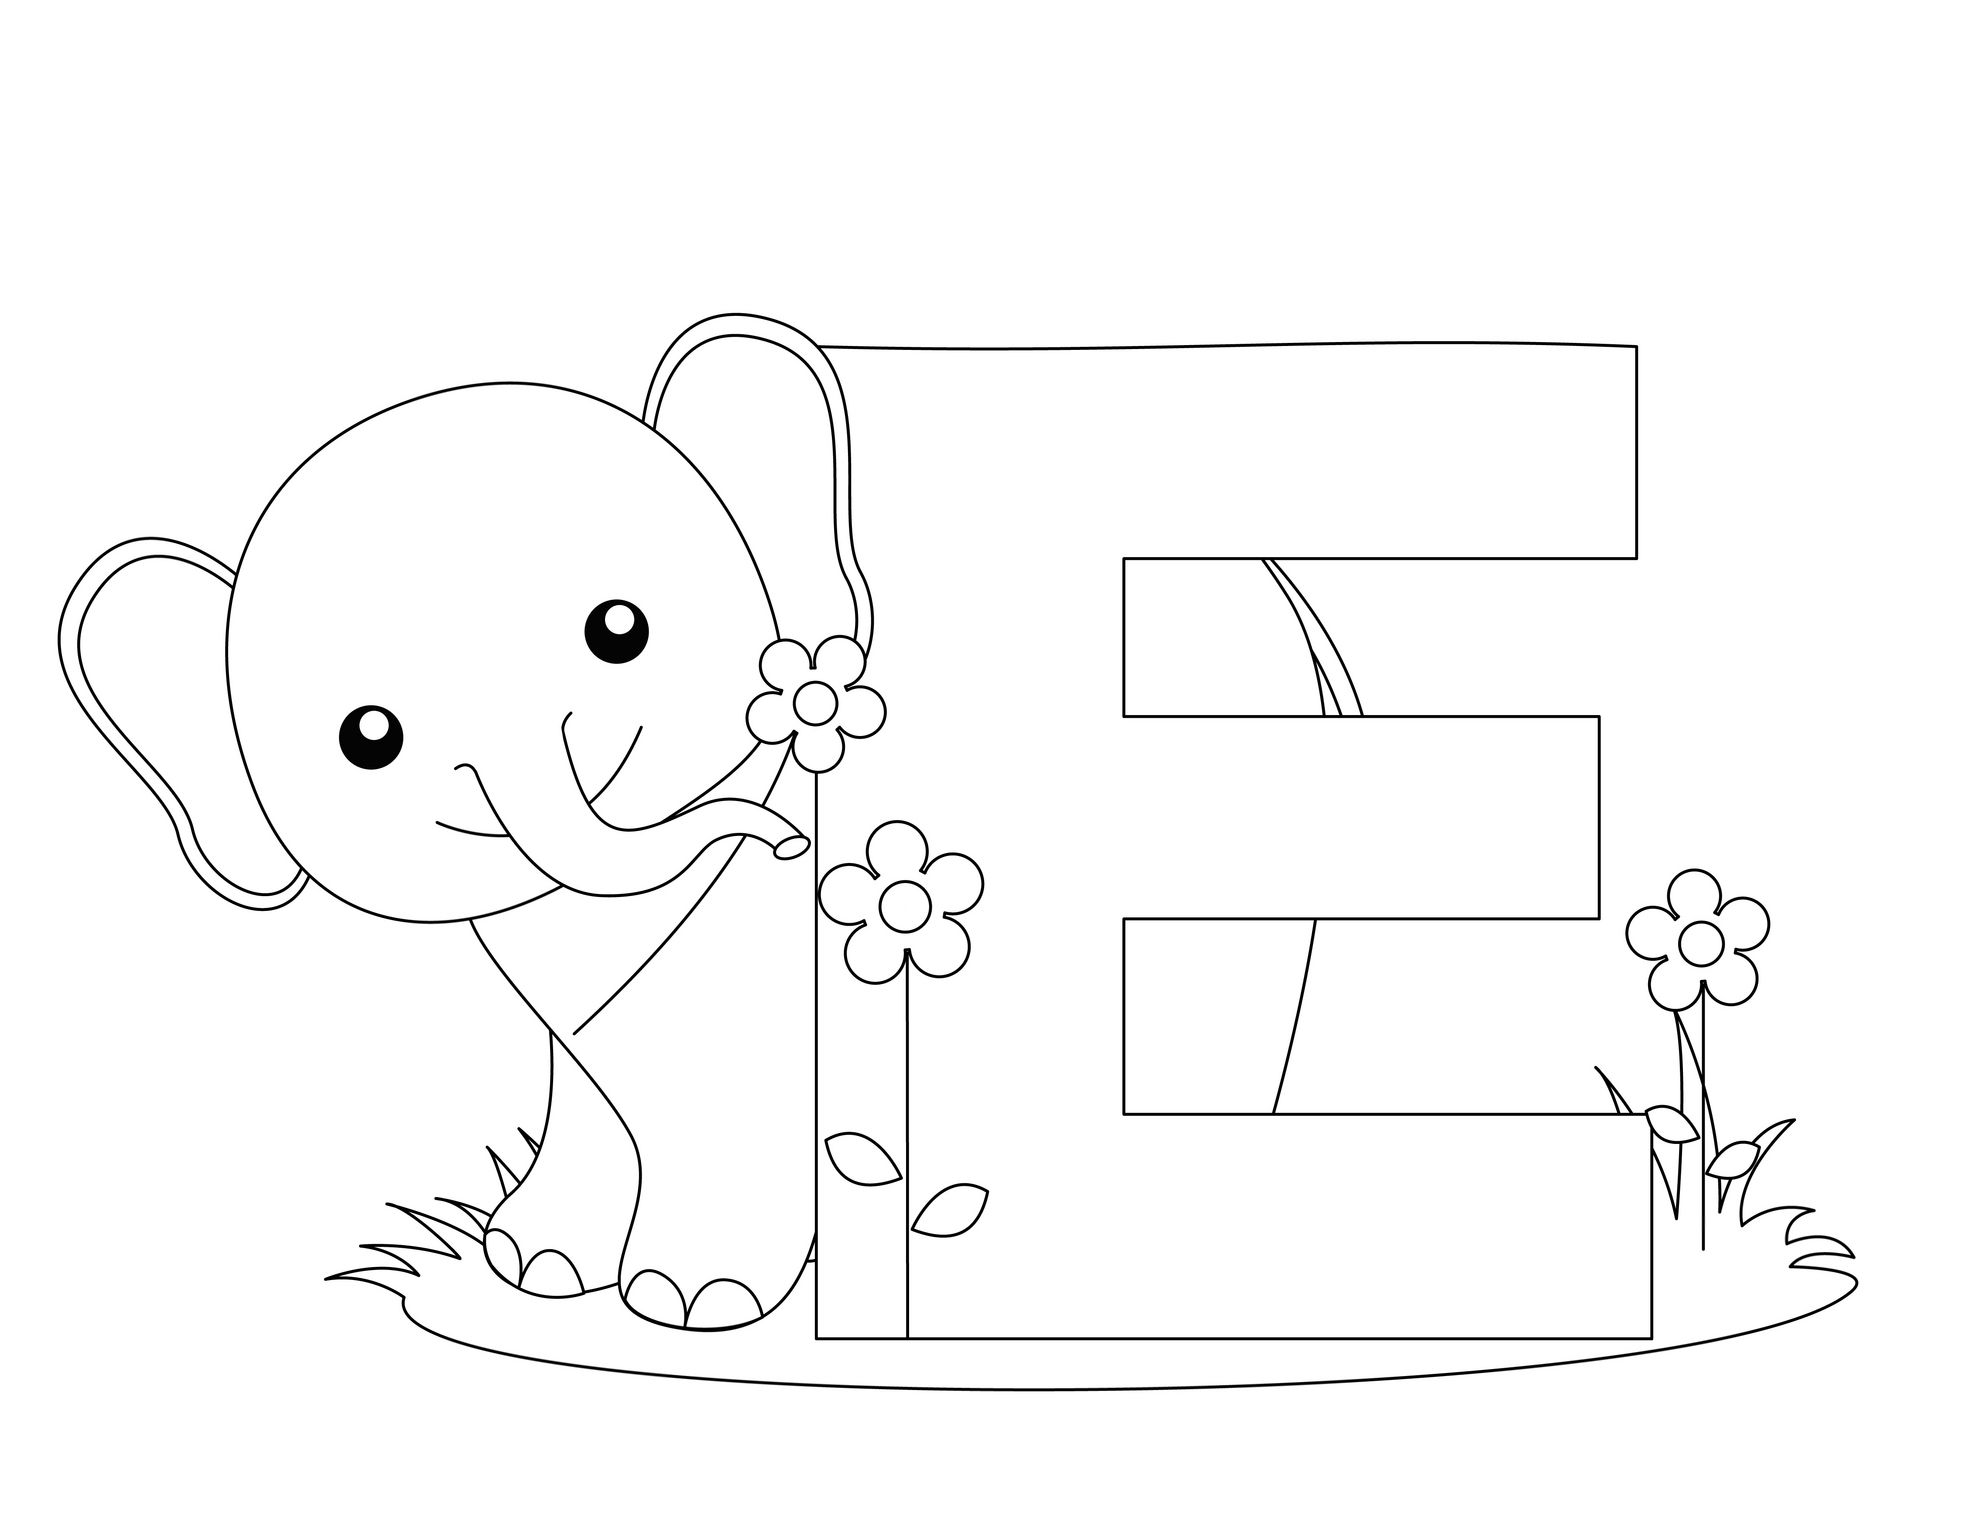 Alphabet coloring pages printable - Printable Coloring Pages